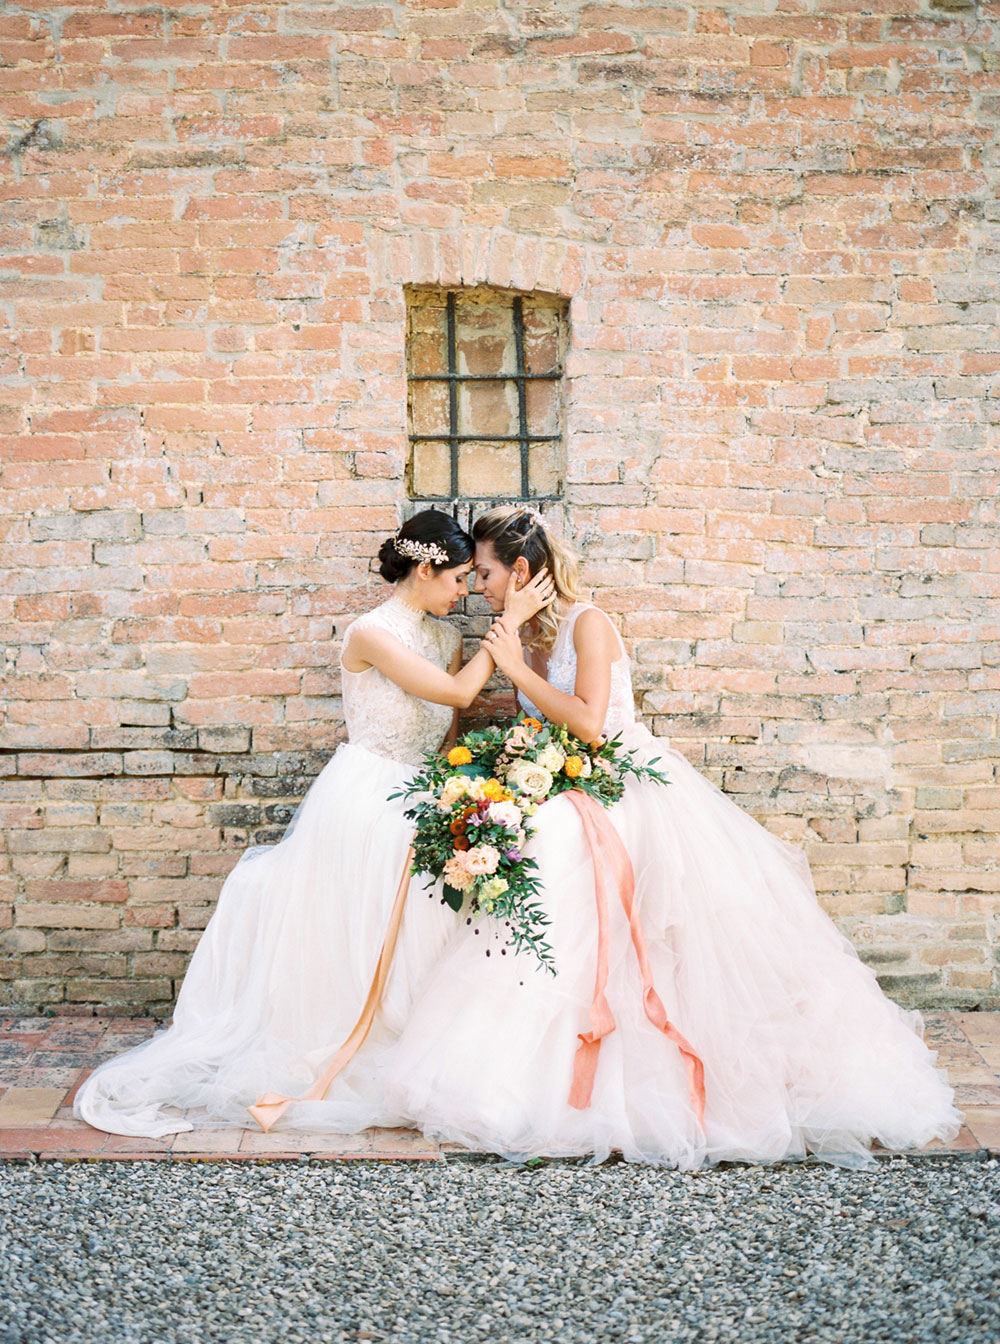 Linari-Tuscany-Elopement-Courtney-Michaela-120